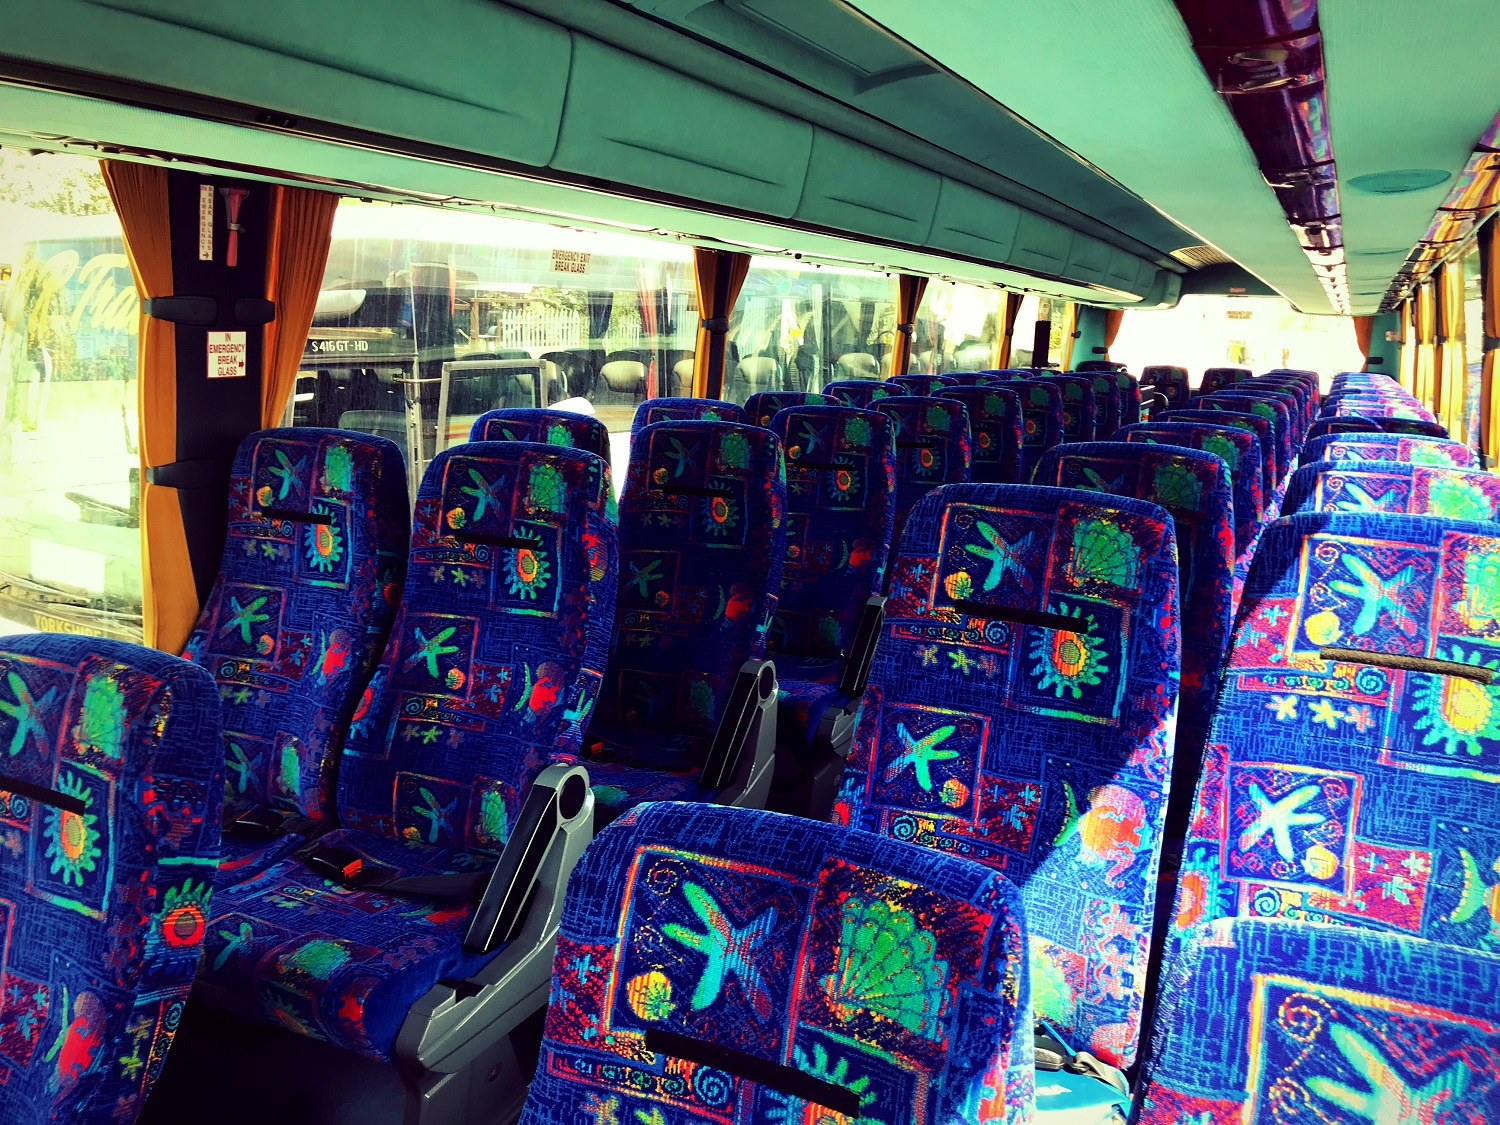 A view of the seats in Advanced Travel's 49 seater Scania Irizar coach, which is available for coach hire in Sheffield. The seats are reclinable and have lap belts. They are covered in a blue fabric with a seashell pattern. There are two rows of double seats with an aisle down the middle. There are two rows of overhead storage compartments above each row of seats.